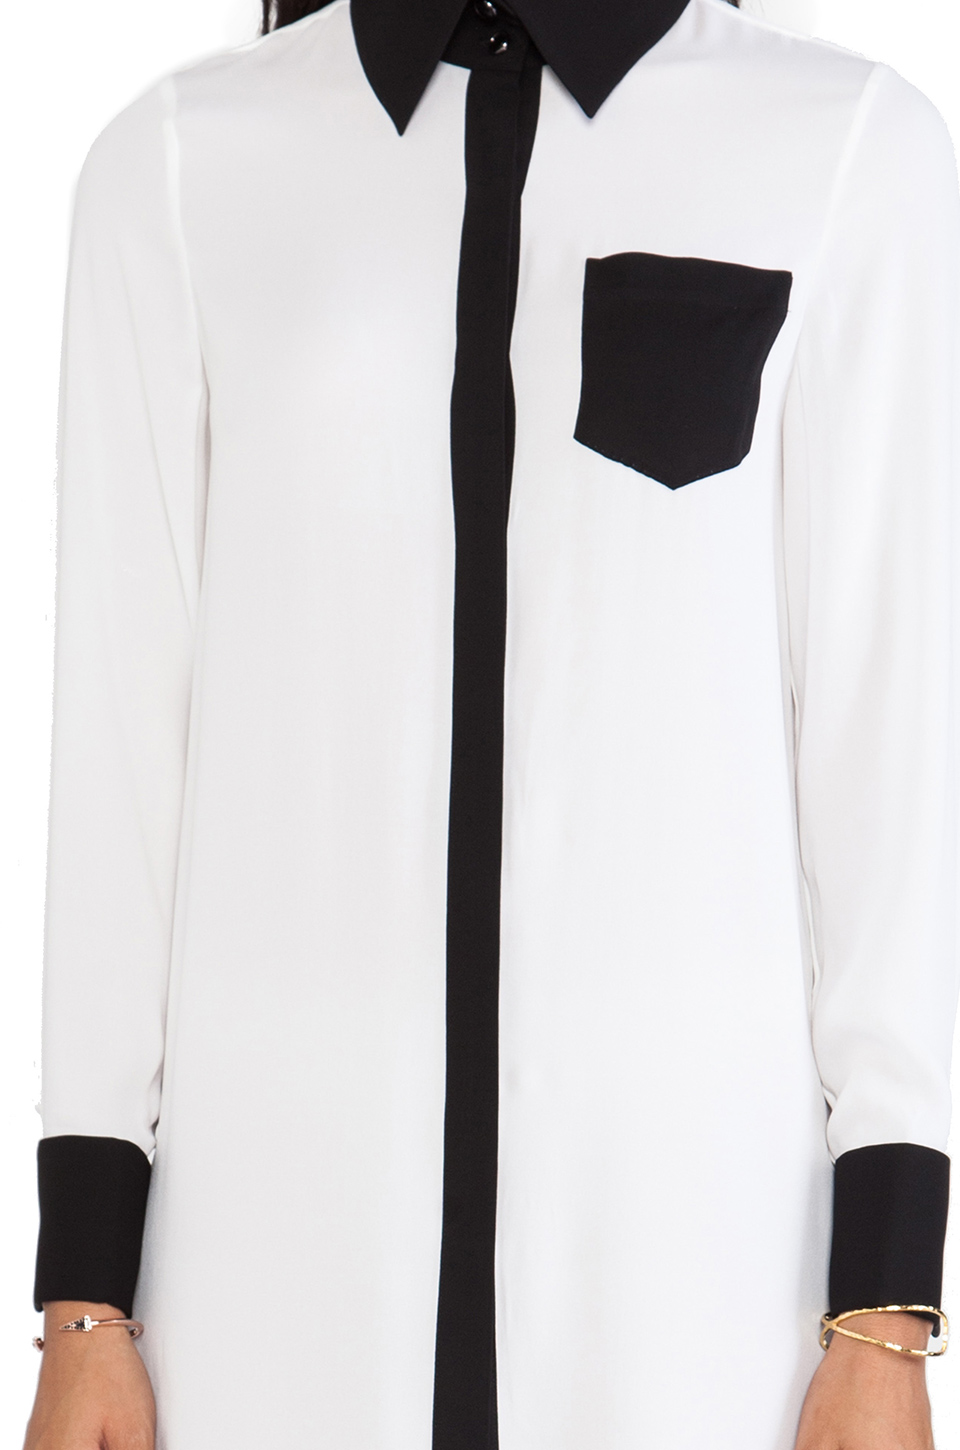 Alice + Olivia Cami Tunic Blouse in White/Black